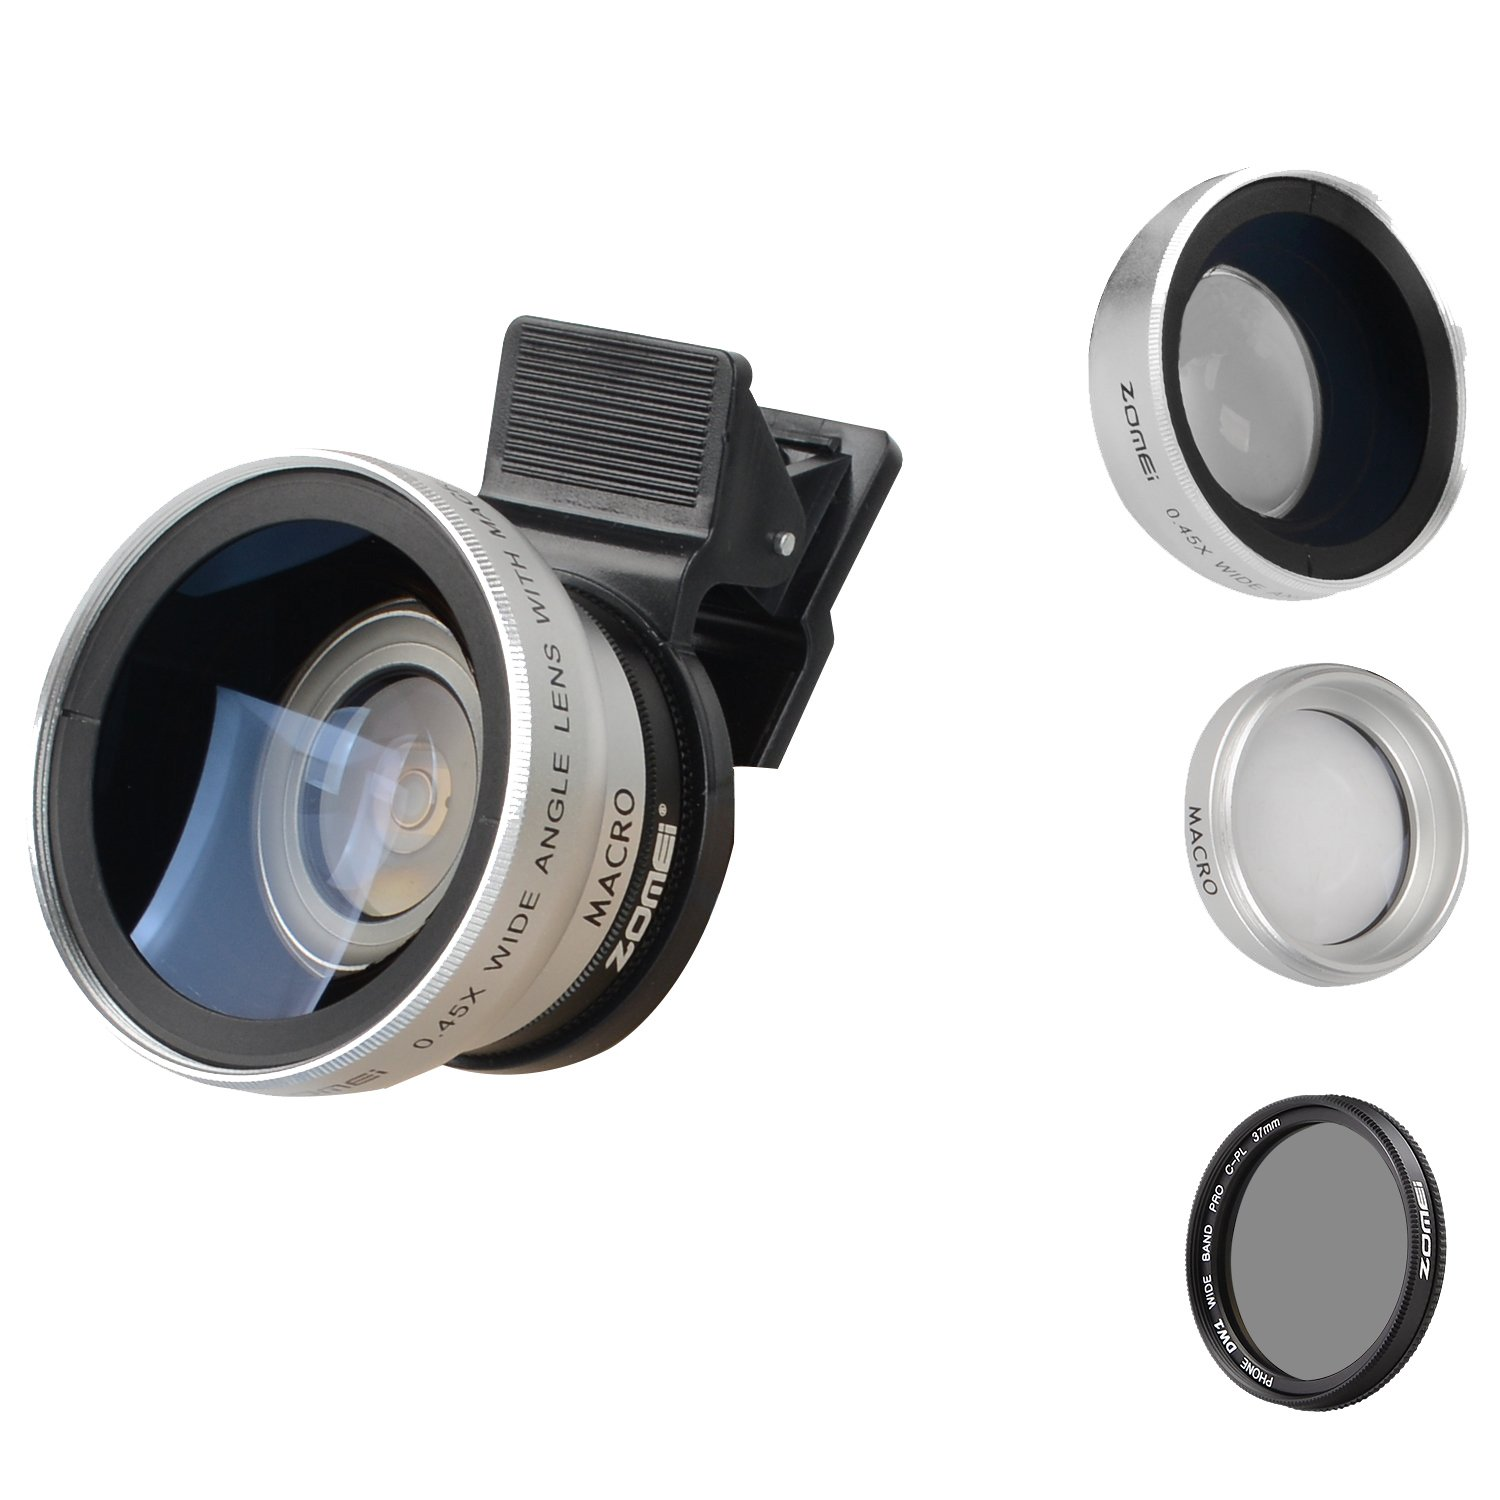 Zomei iPhone Lens 3 in 1 Cell Phone Camera Lens Kit 140 Degree Wide Angle Lens + 10X Macro Lens + CPL Polarizing Filter with 37mm Clip for iPhone Samsung Android Smartphones(Silver)